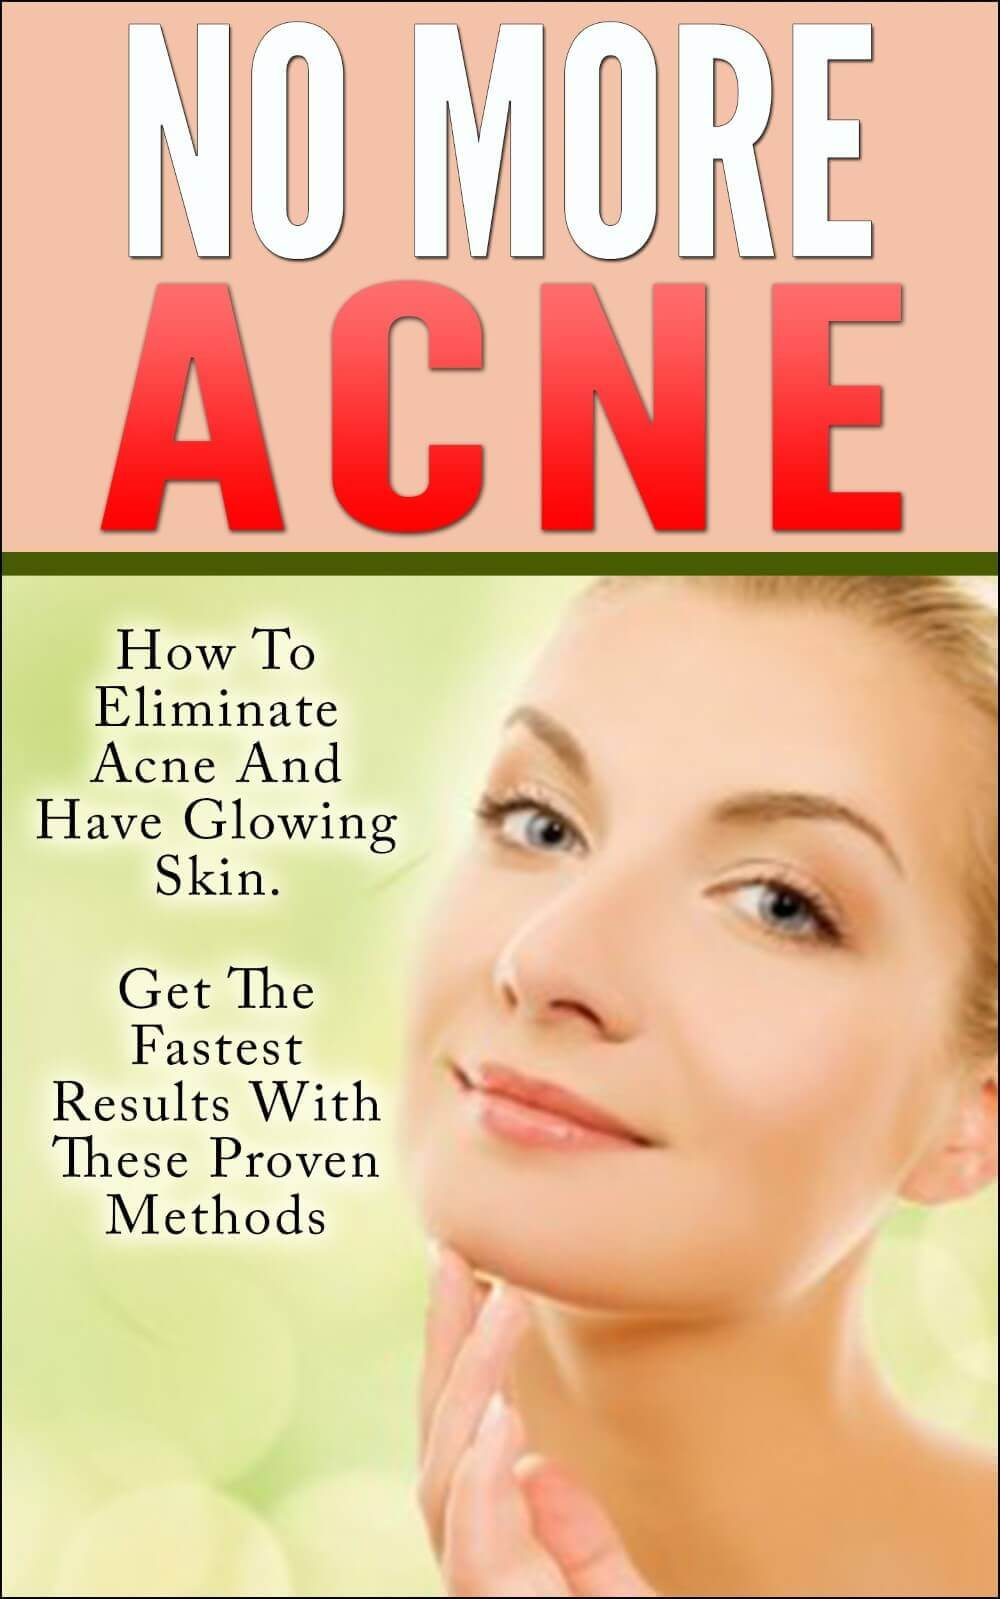 acne-no-more-acne-how-to-eliminate-acne-and-have-glowing-skin.-get-fast-results-with-these-proven-methods-acne-acne-free_26683676